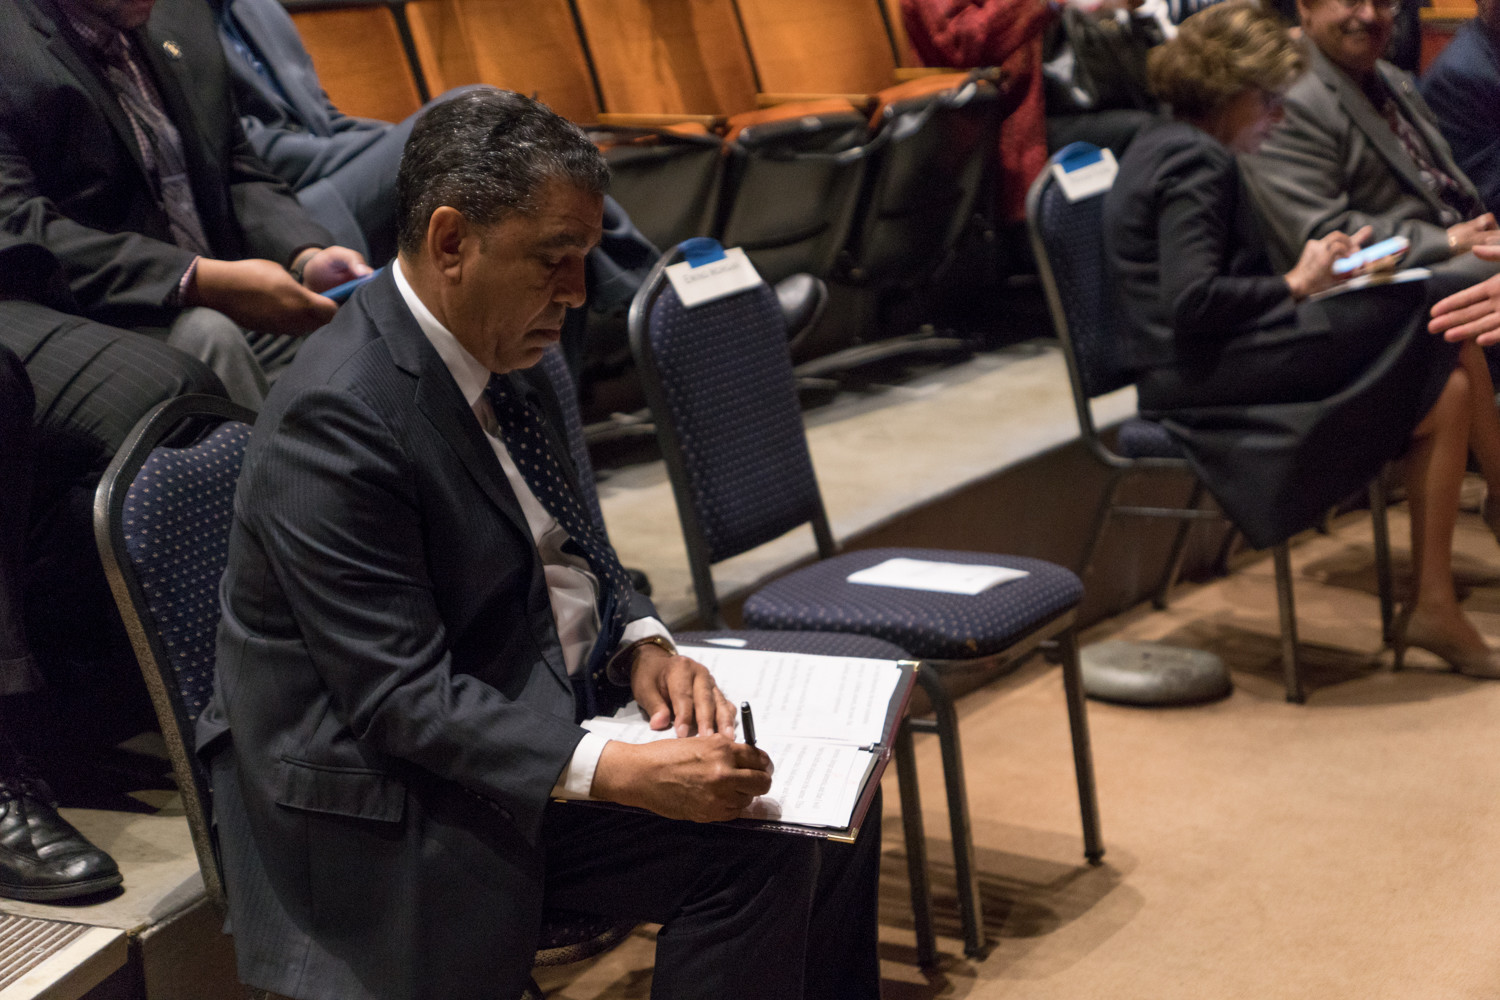 U.S. Rep. Adriano Espaillat goes over his speech before taking the stage at Lehman College last year. Espaillat headlines a free meet-and-greet breakfast hosted by the Van Cortlandt Jewish Center on Jan. 28, with other elected officials expected to attend.